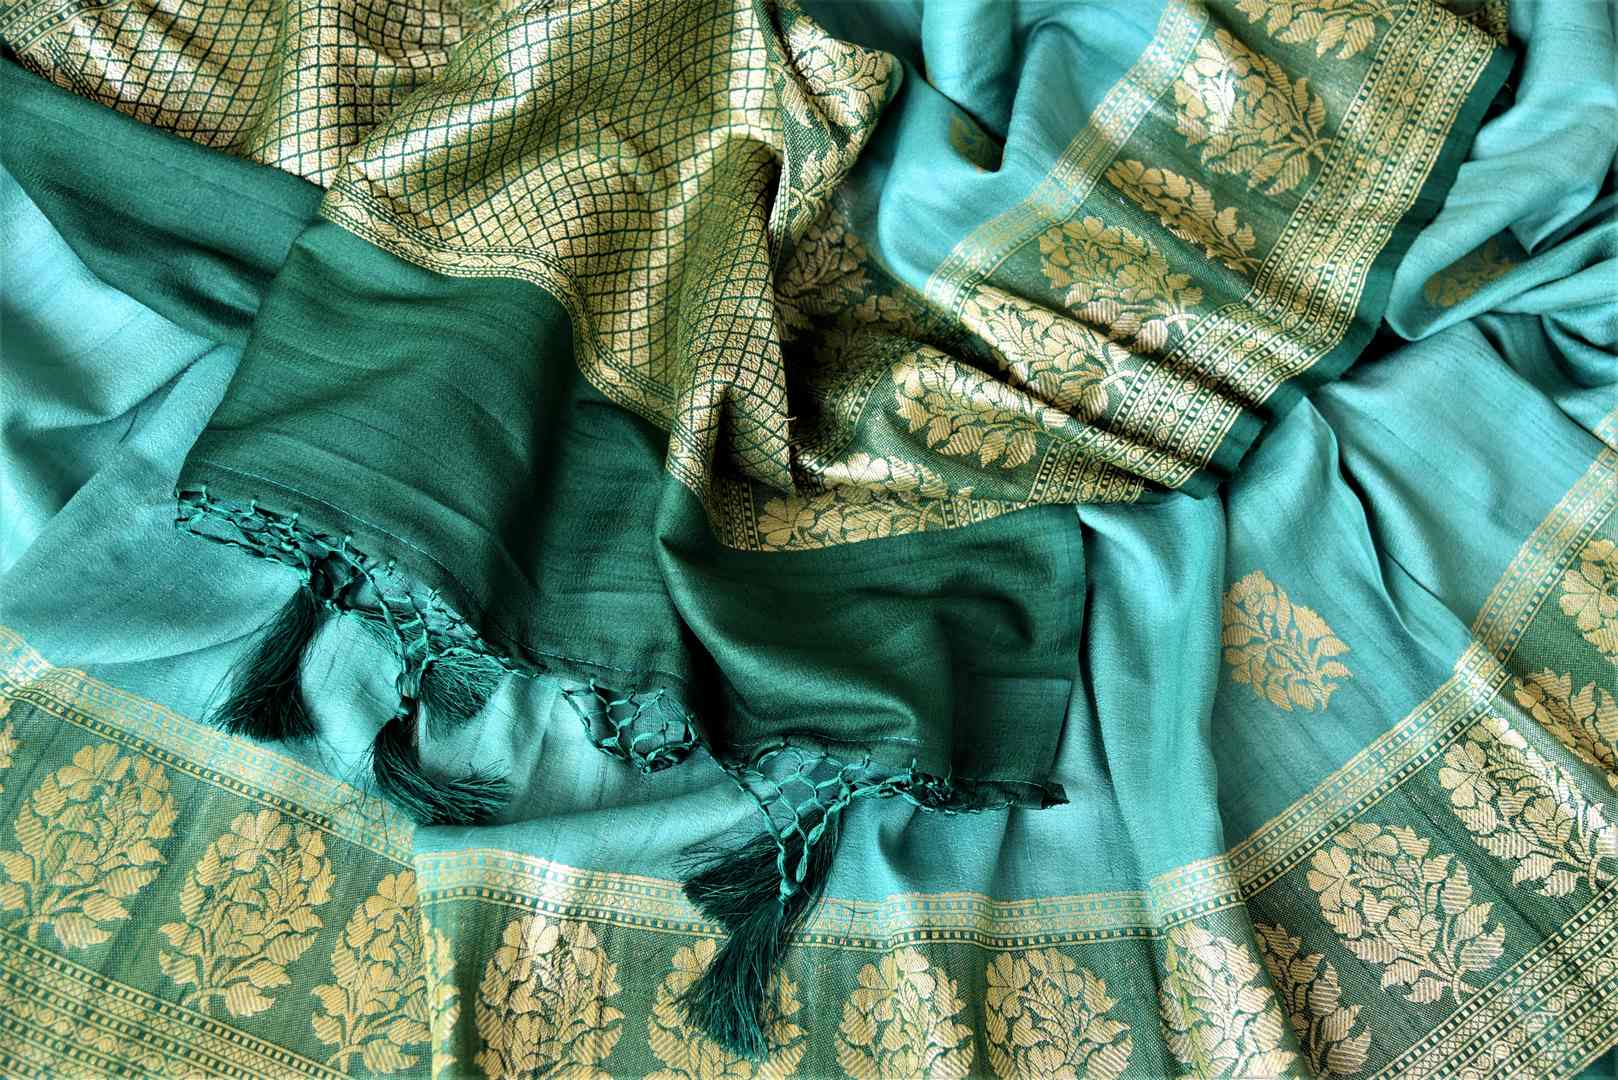 Buy beautiful sea green tussar Banarsi saree online in USA with floral zari buta border. Be the center of attraction at parties and weddings with beautiful Kanchipuram silk sarees, pure silk sarees, handwoven sarees, Banarasi sarees from Pure Elegance Indian fashion store in USA.-details